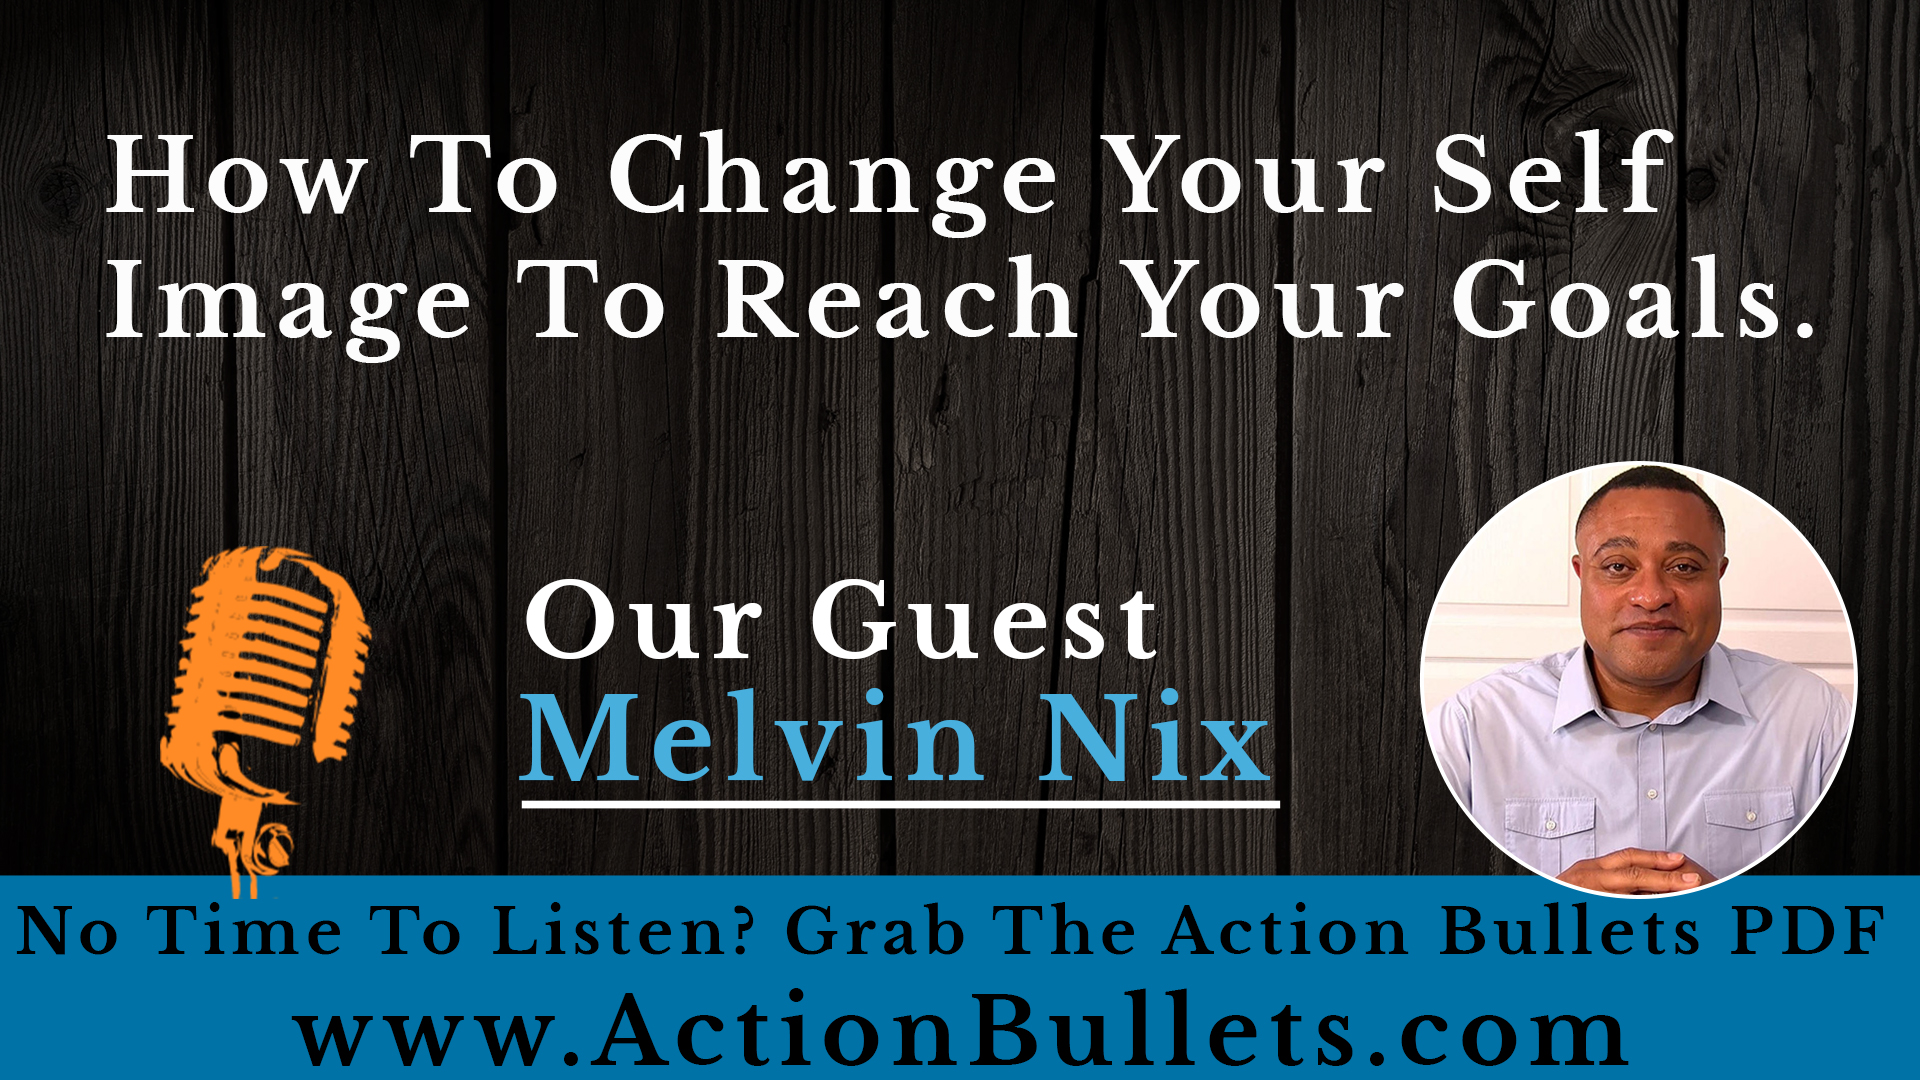 Melvin Nix: How to Change Your Self Image to Reach Your Goals